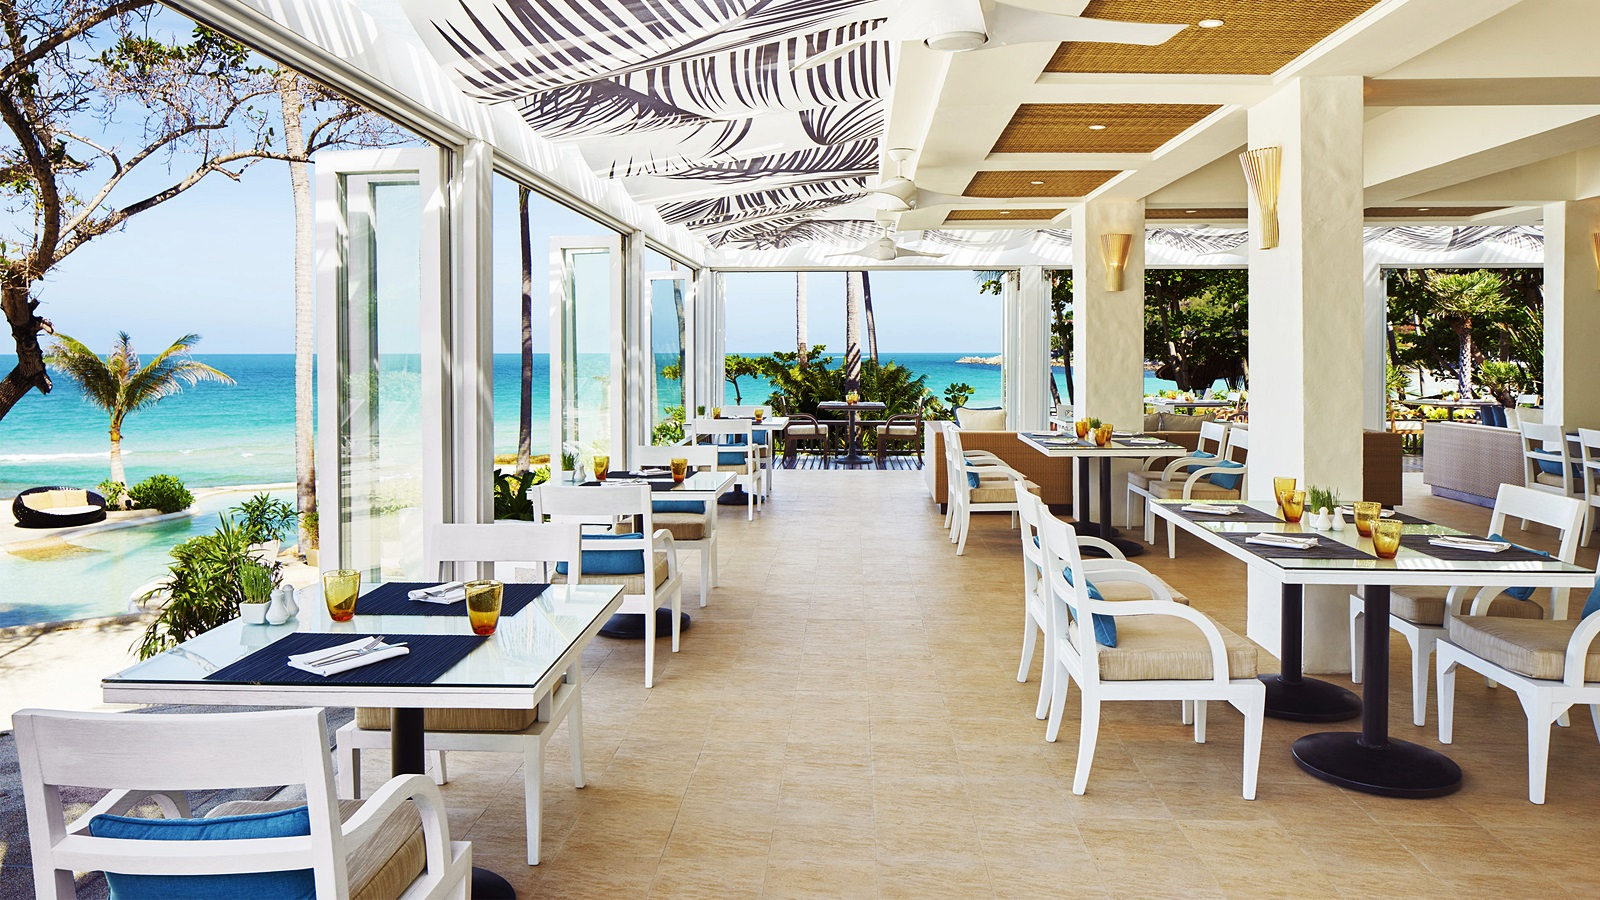 interior of restaurant with ocean in background